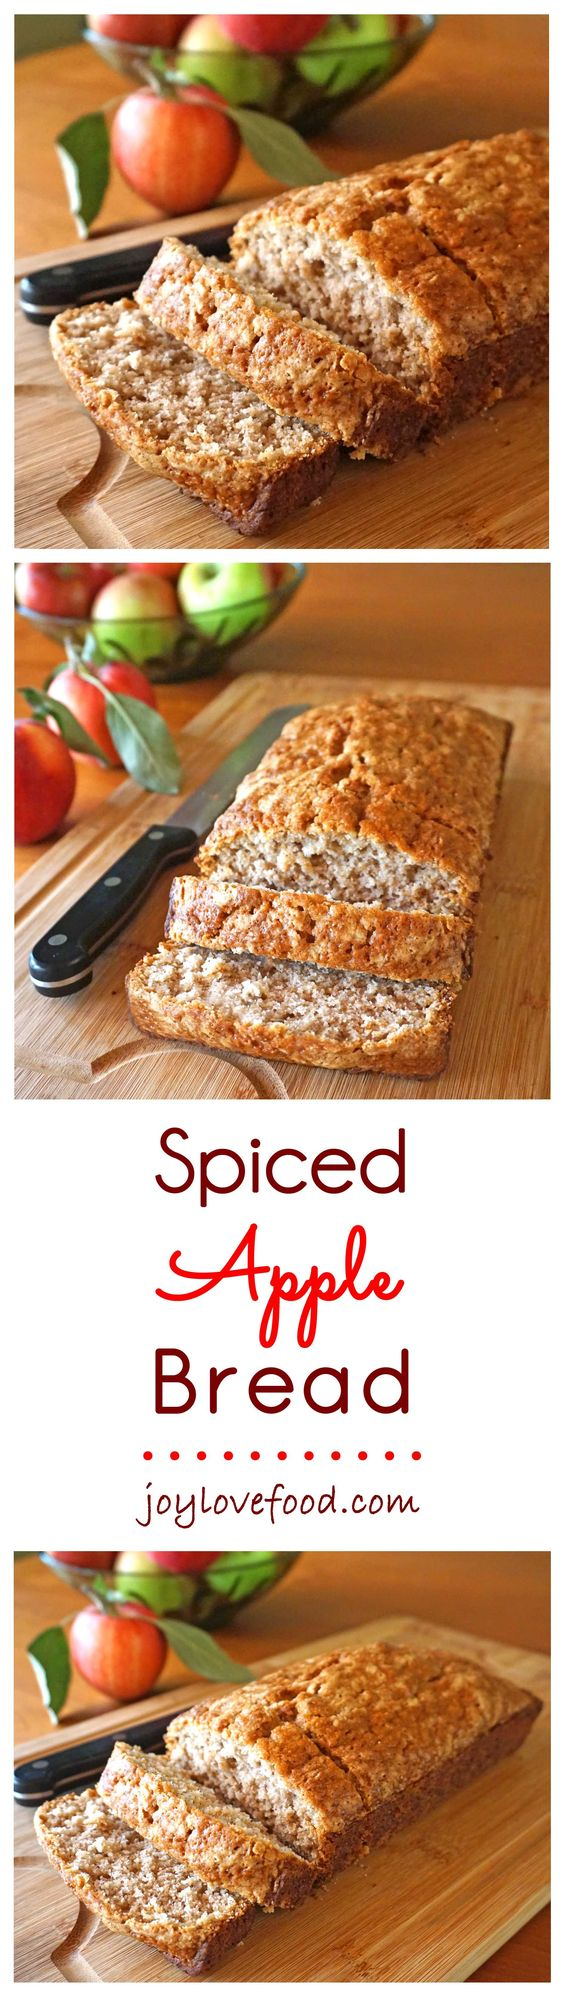 Spiced Apple Bread – this delicious, subtly spiced apple bread is the perfect autumn treat, enjoy a slice or two with a cup of coffee in the morning or anytime you're craving a little something sweet.